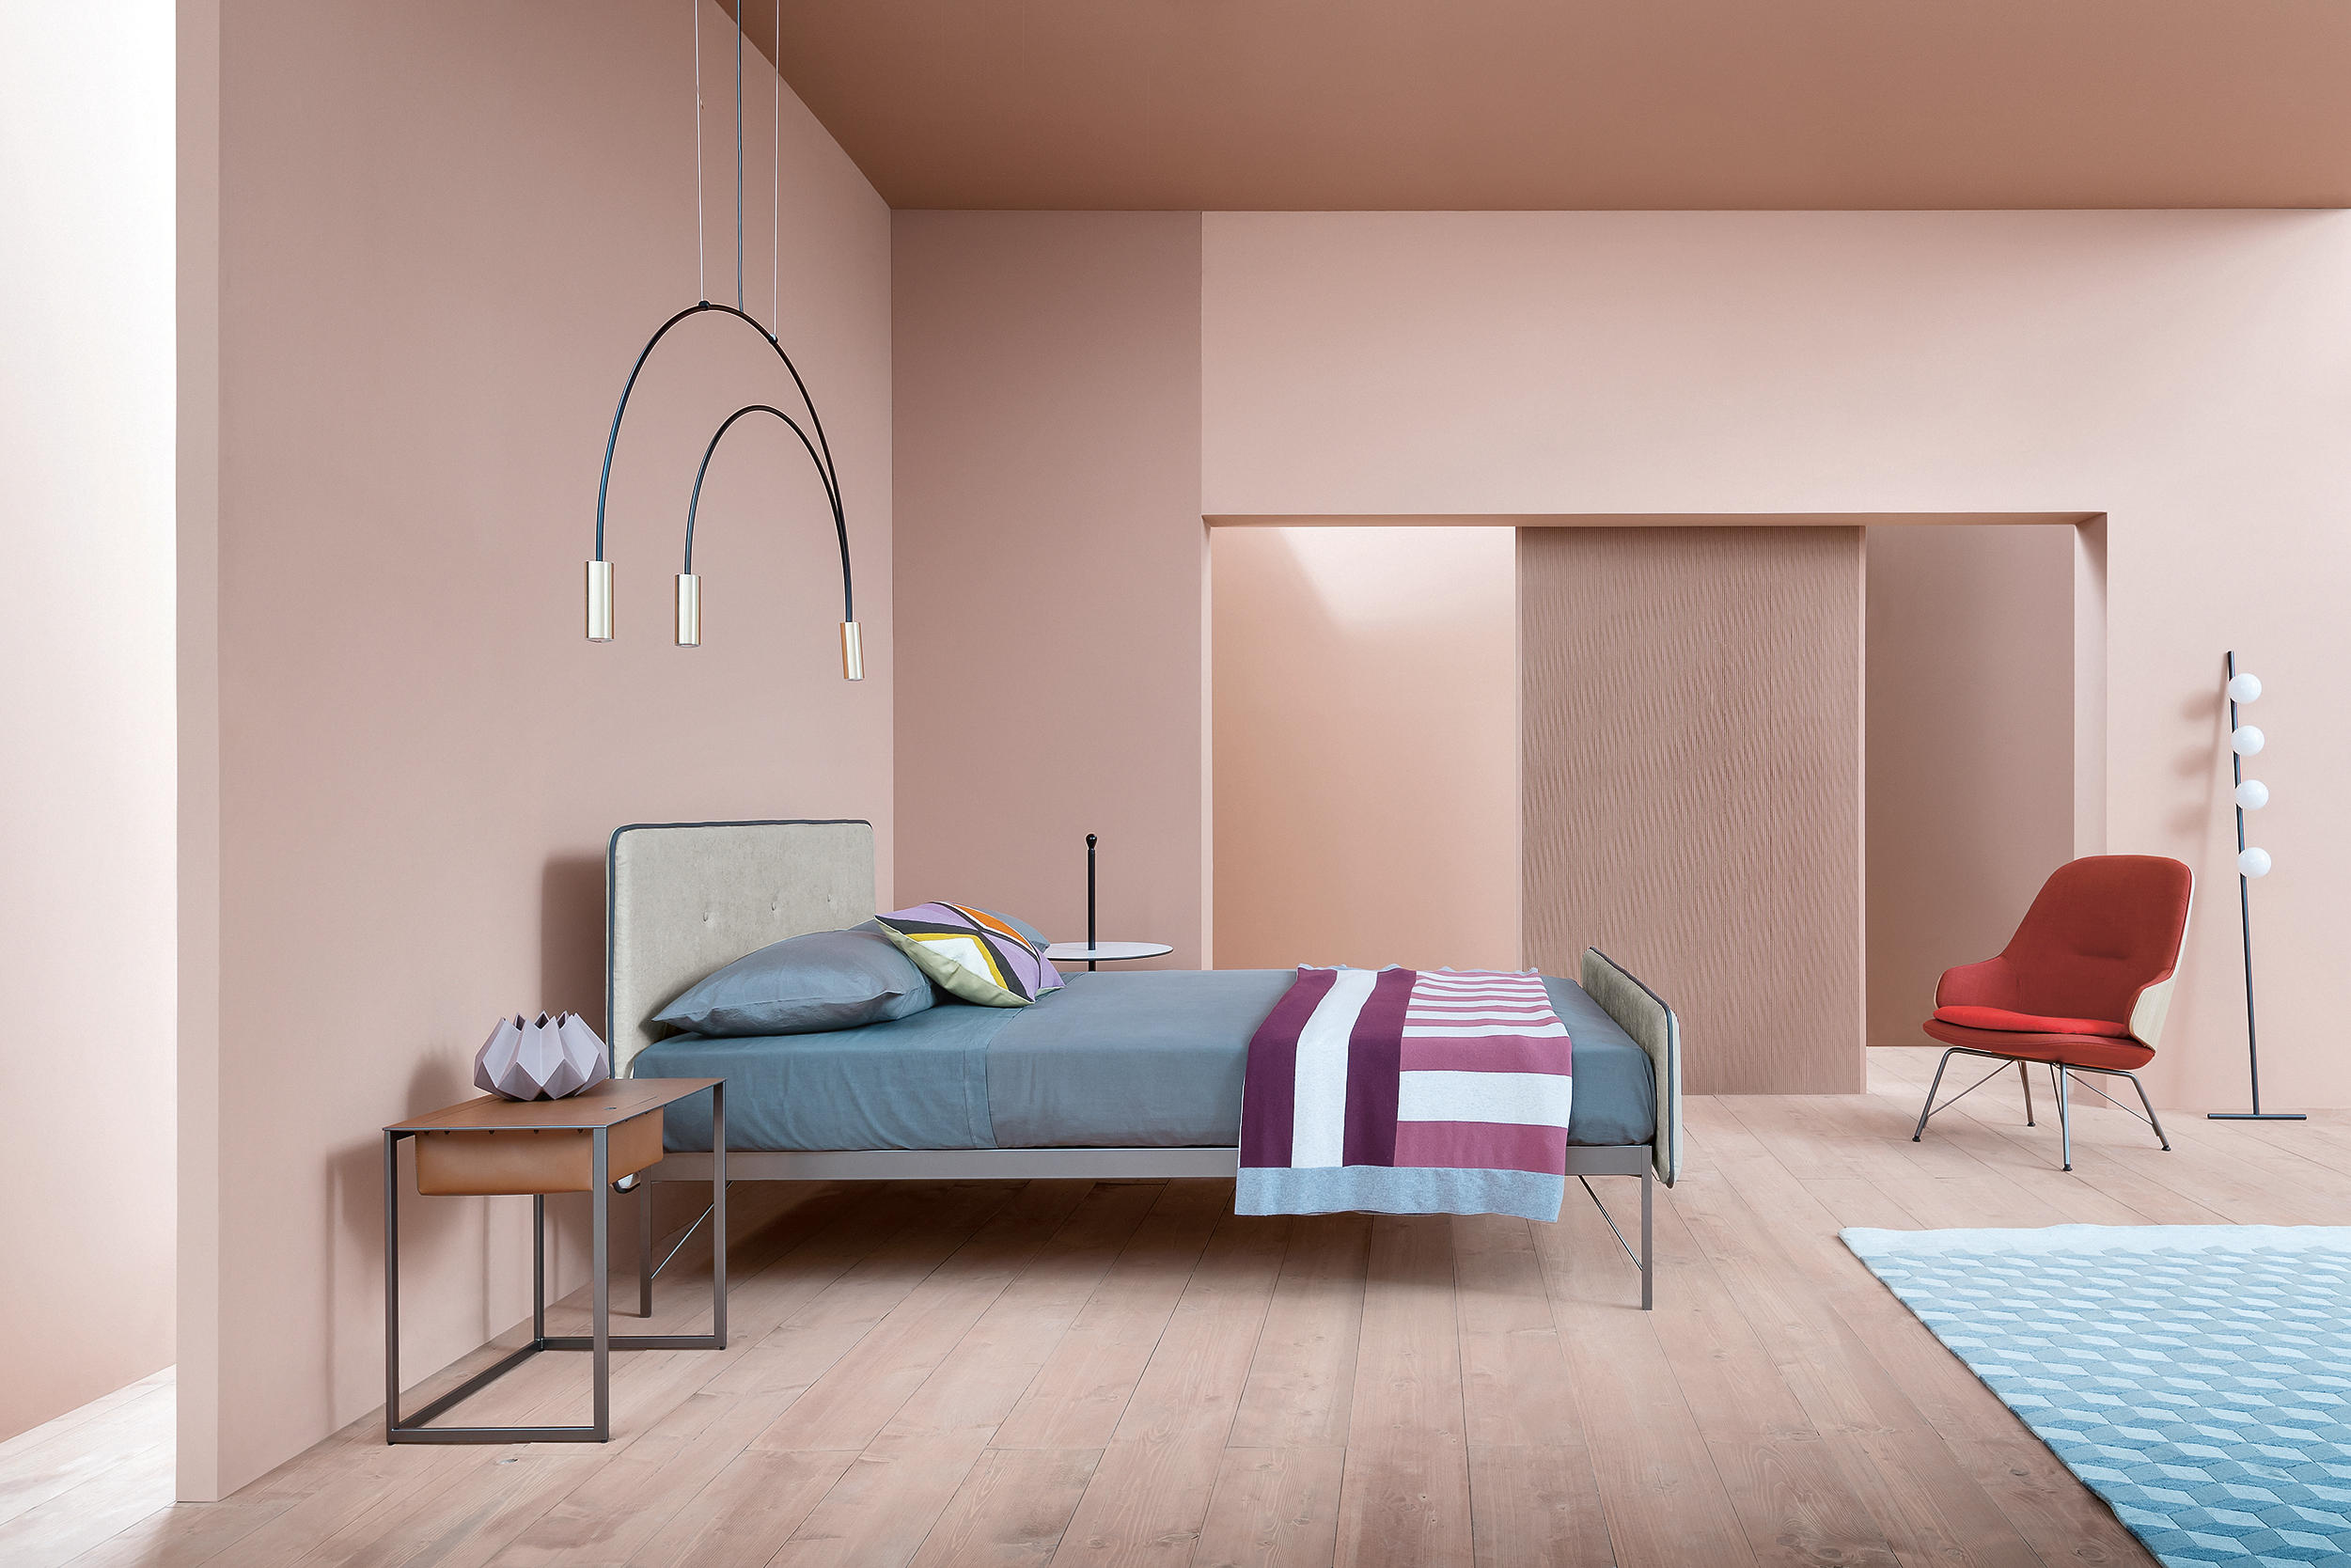 Hotelroyal 1715 Beds From Zanotta Architonic